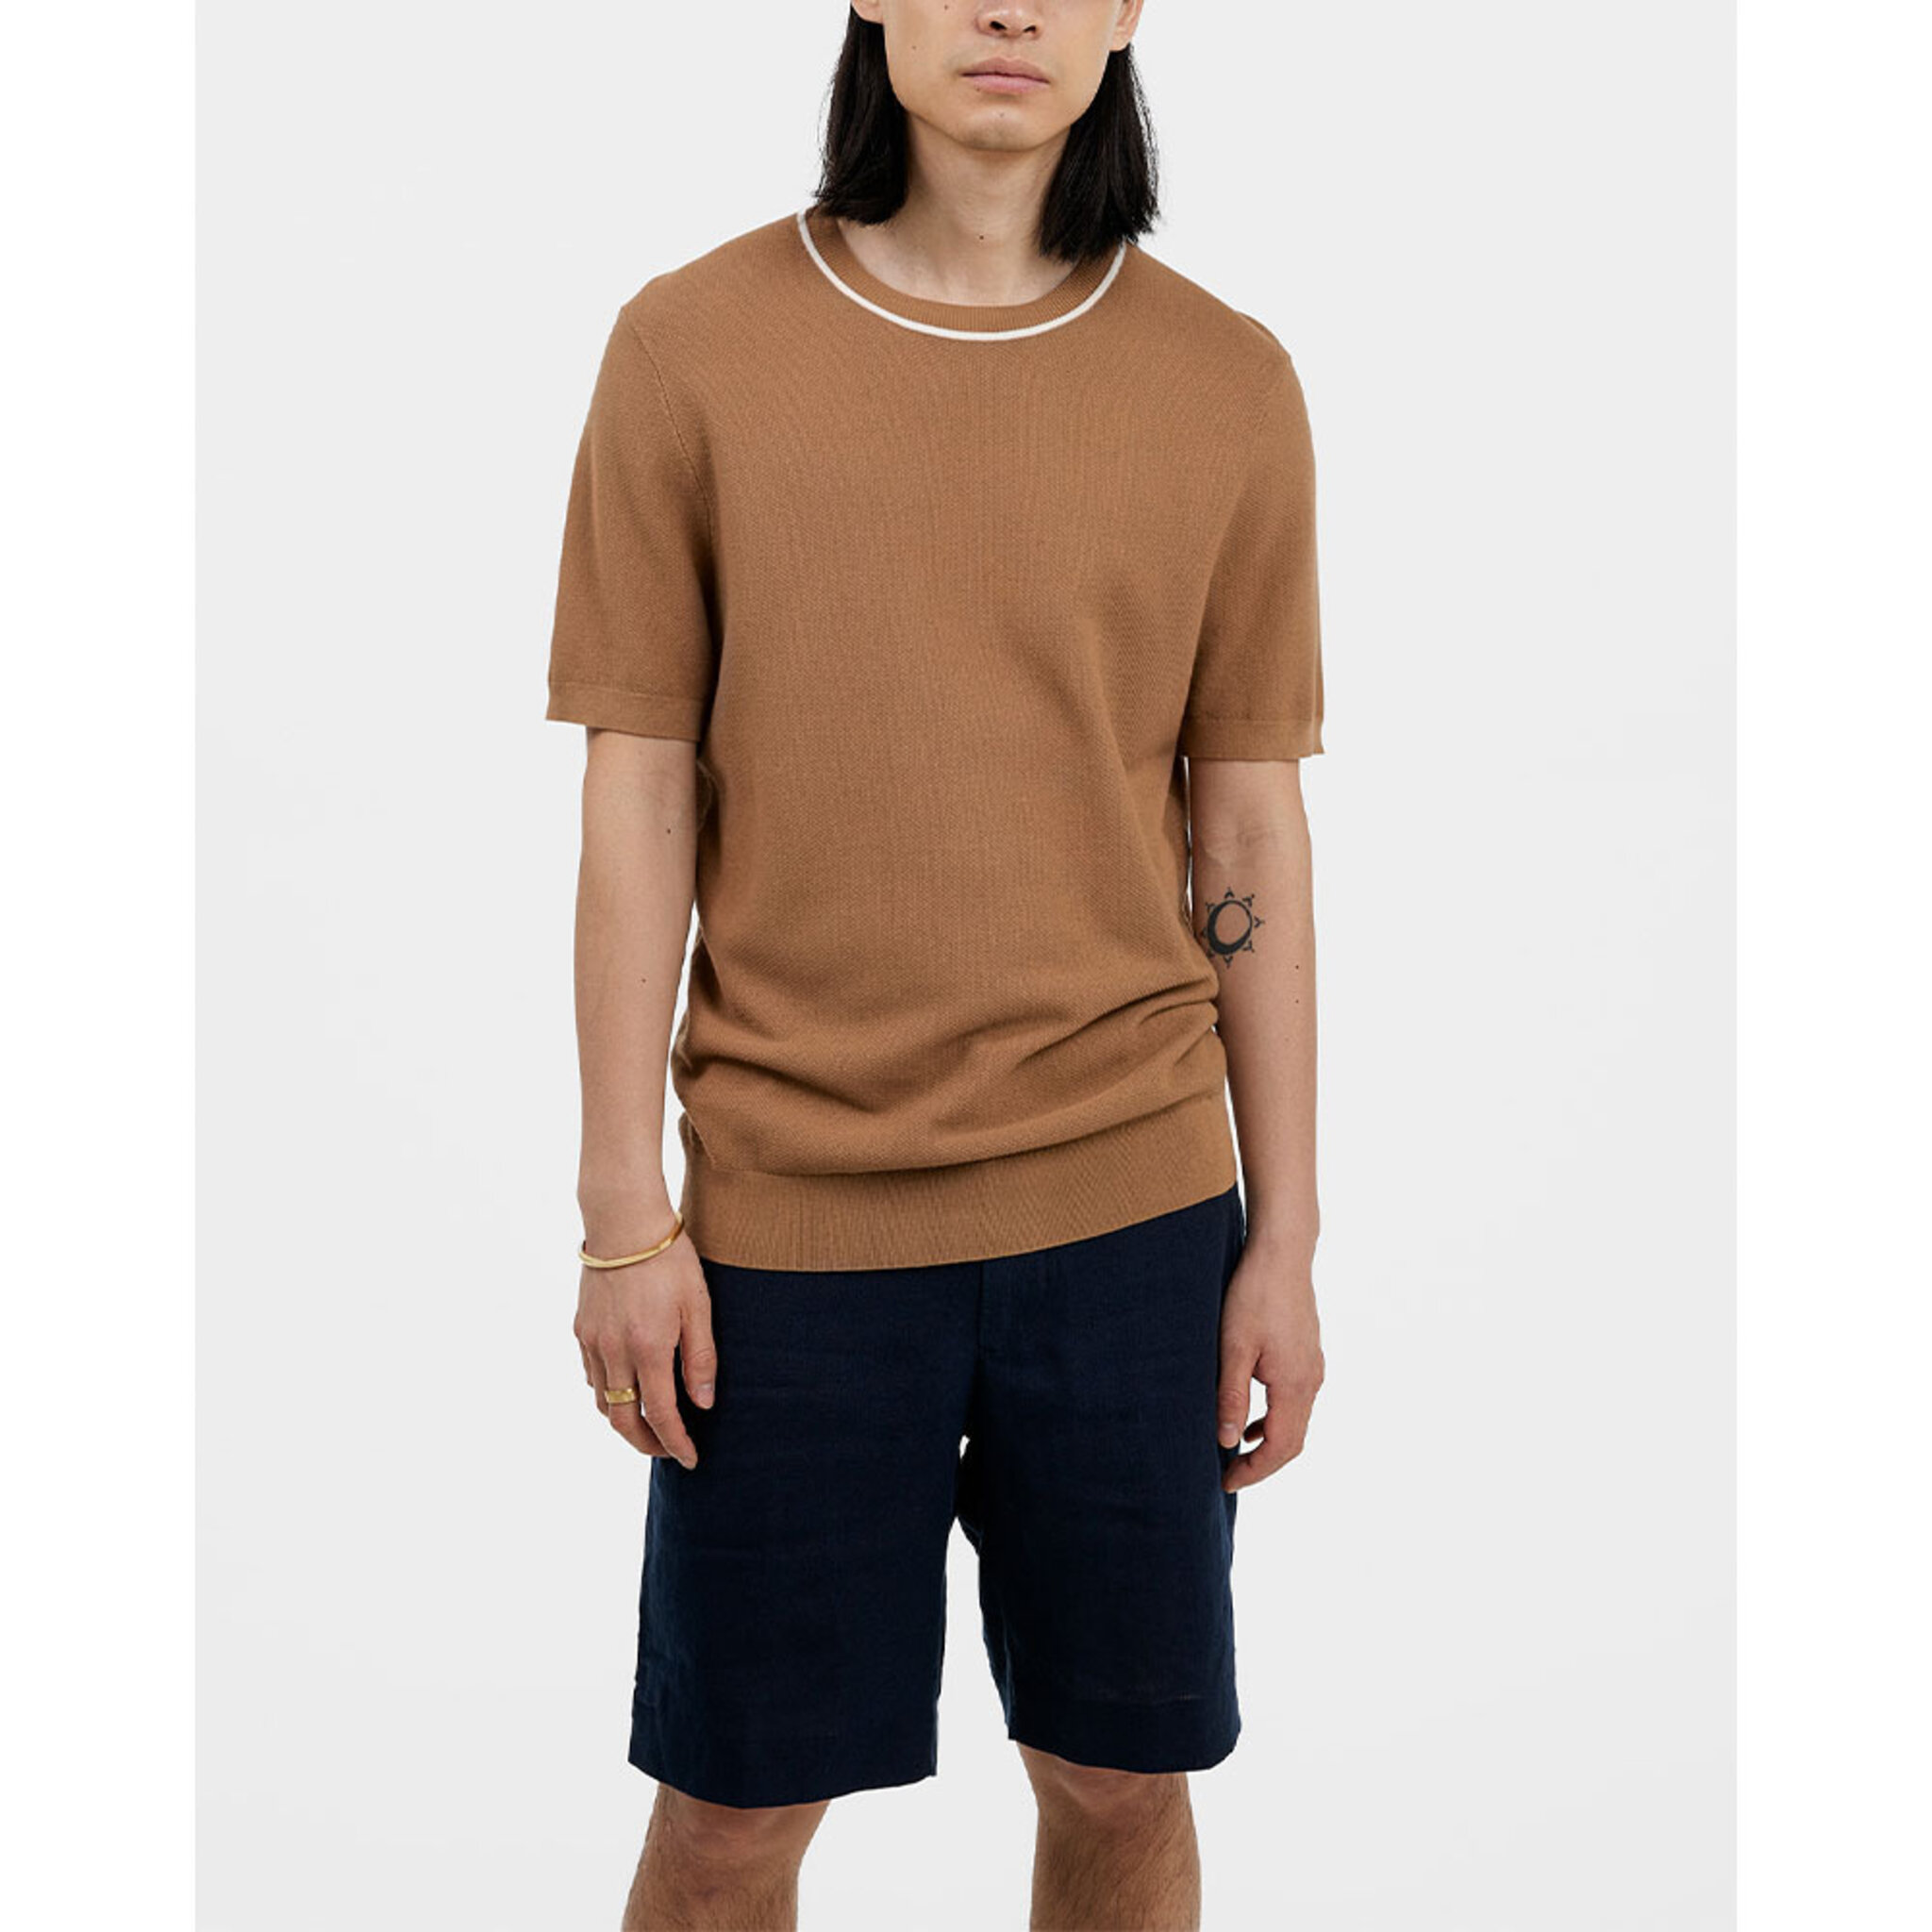 Cain Knitted Tee